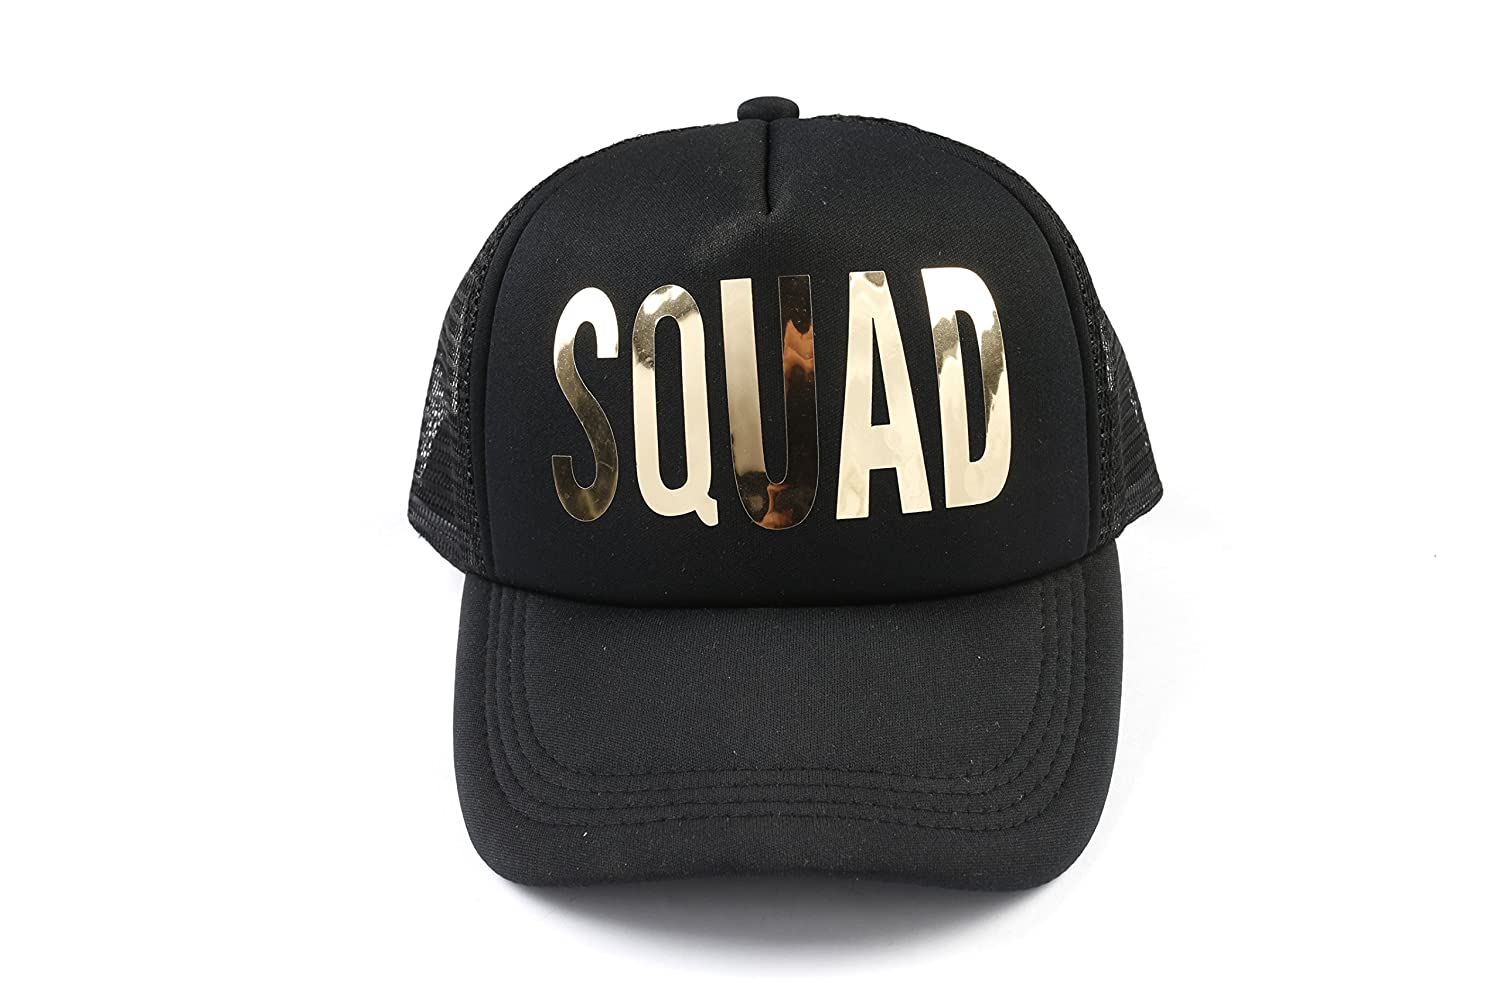 Erxvxp Bachelorette Party Bride and Squad - Gorra para Novio ...